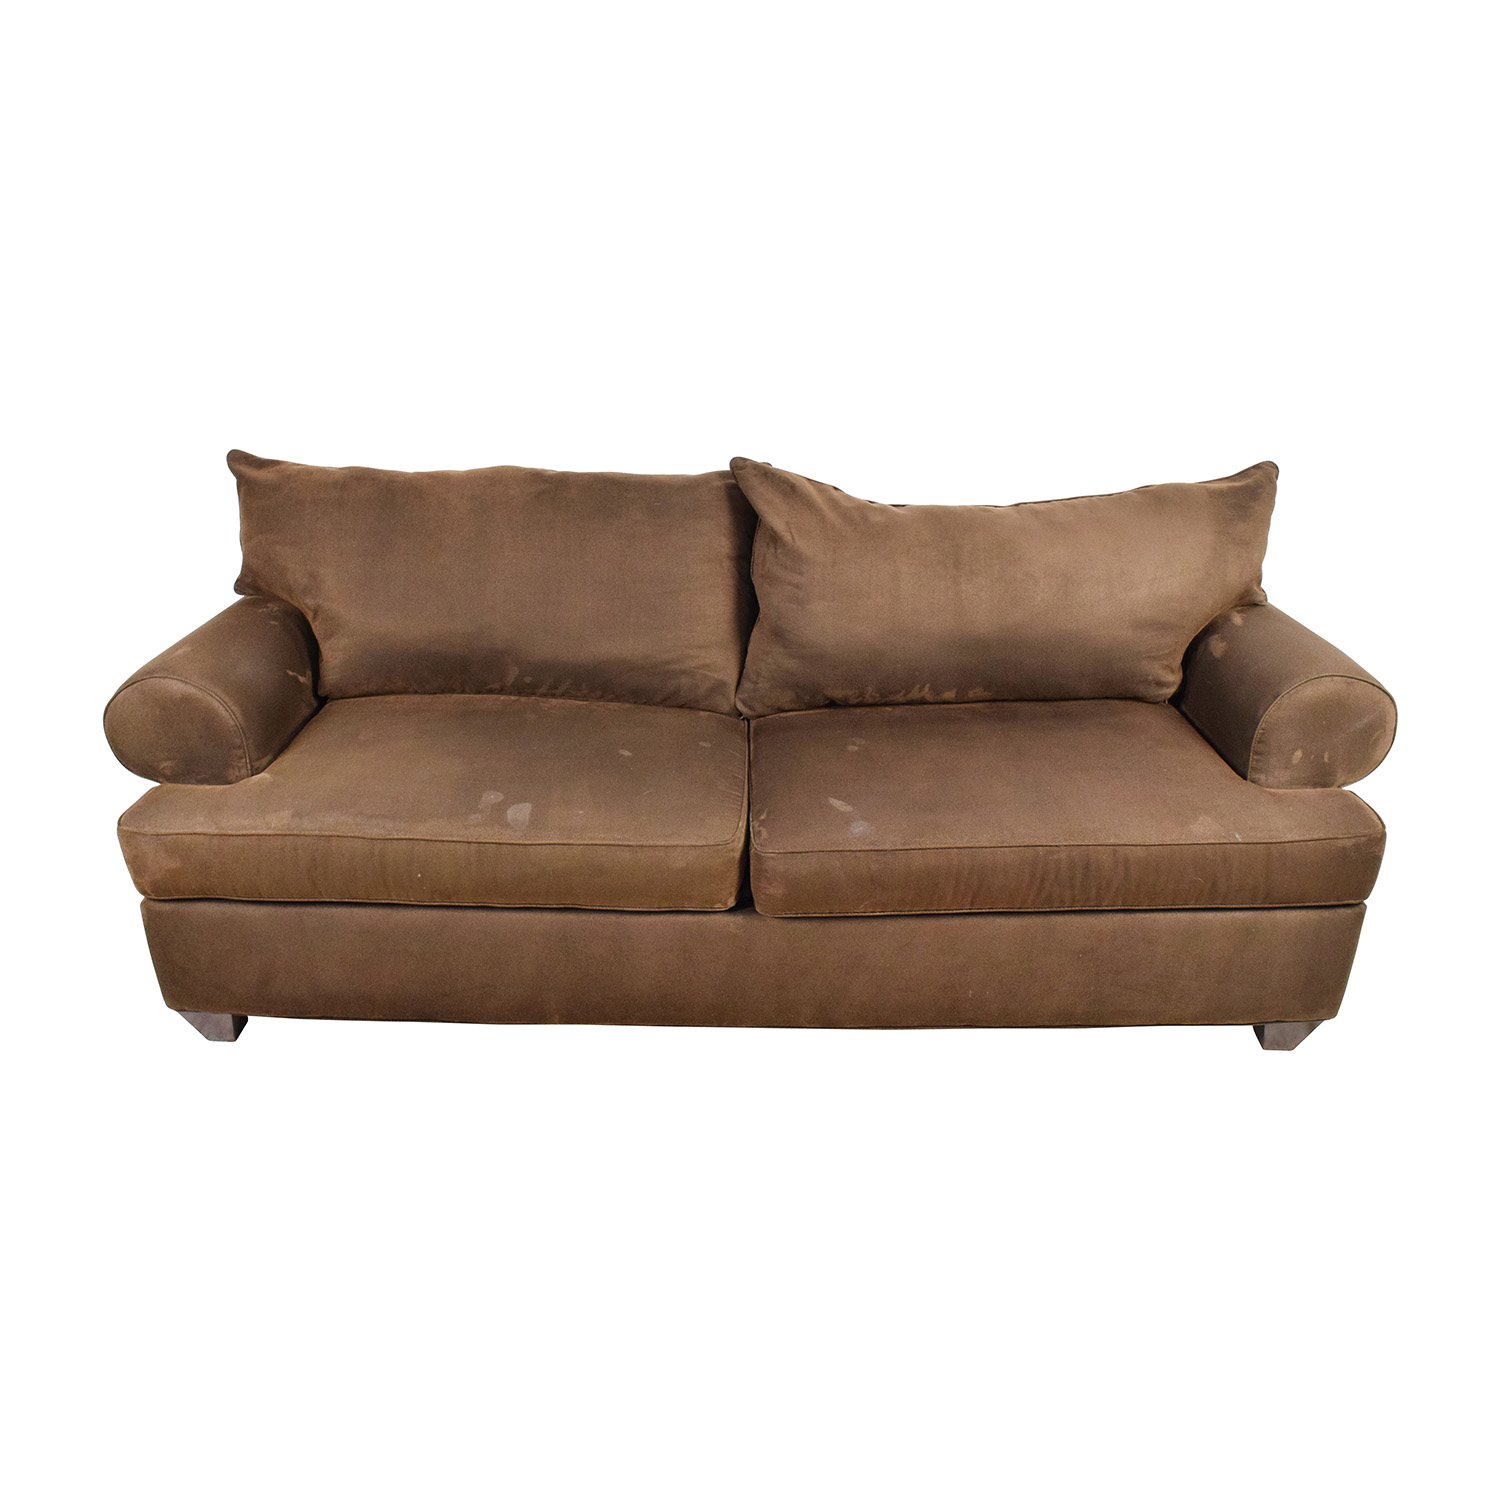 Big Cushion Sofa Super Large Cushion Sofa Re93 Wendycorsistaubcommunity